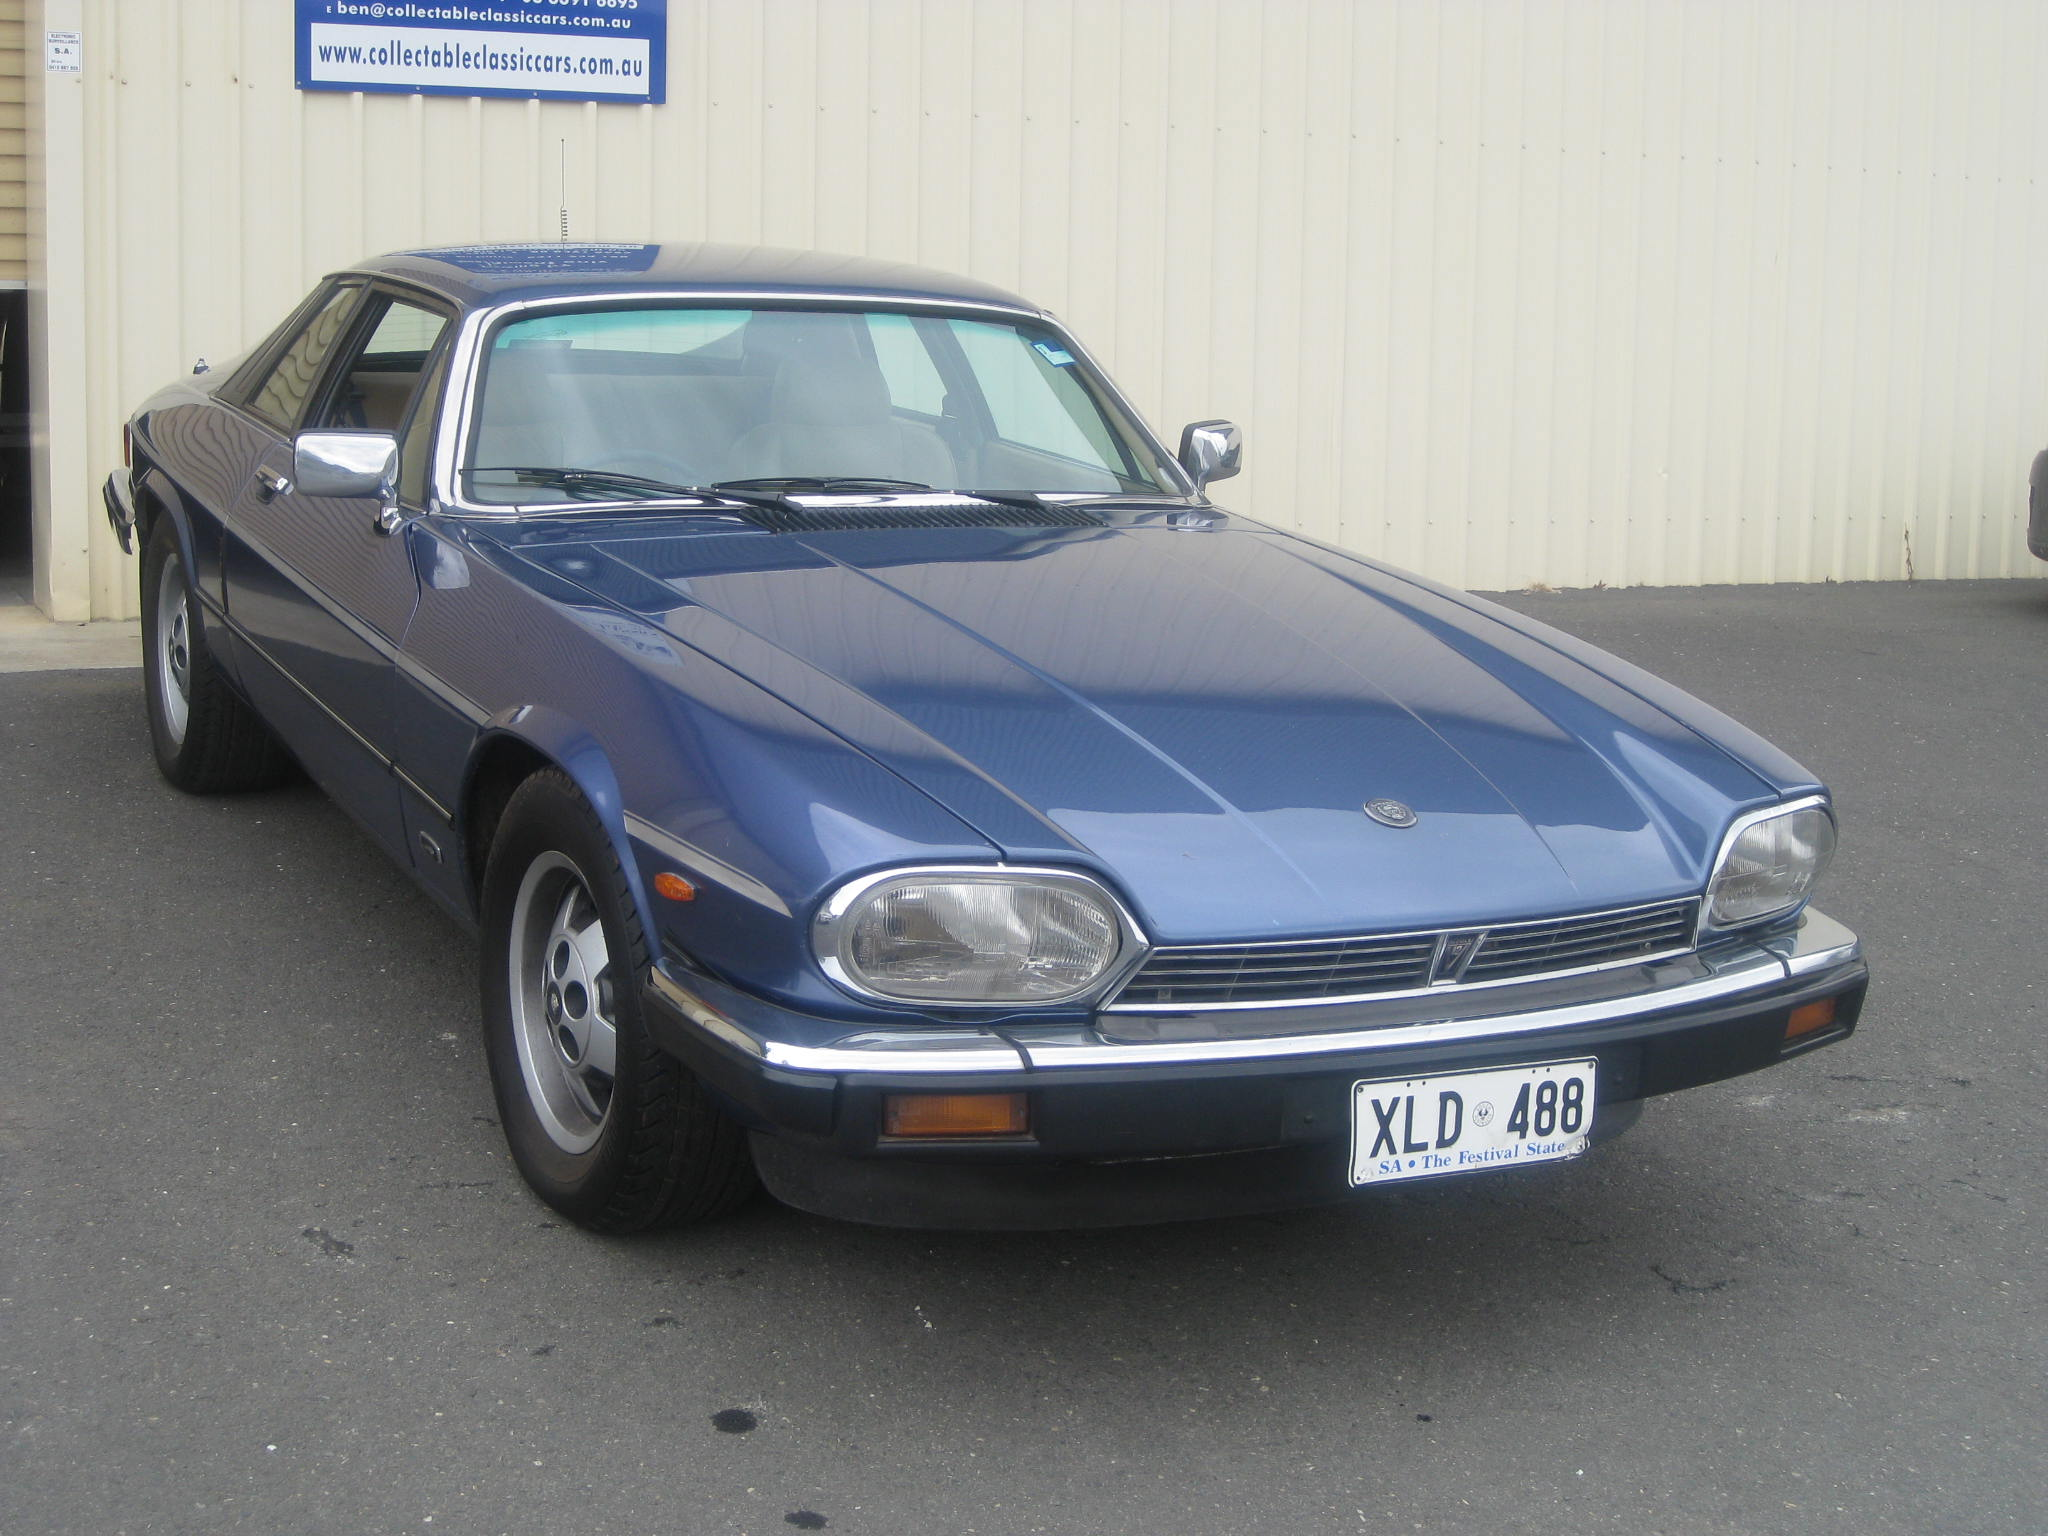 1984 Jaguar XJS HE – Collectable Classic Cars